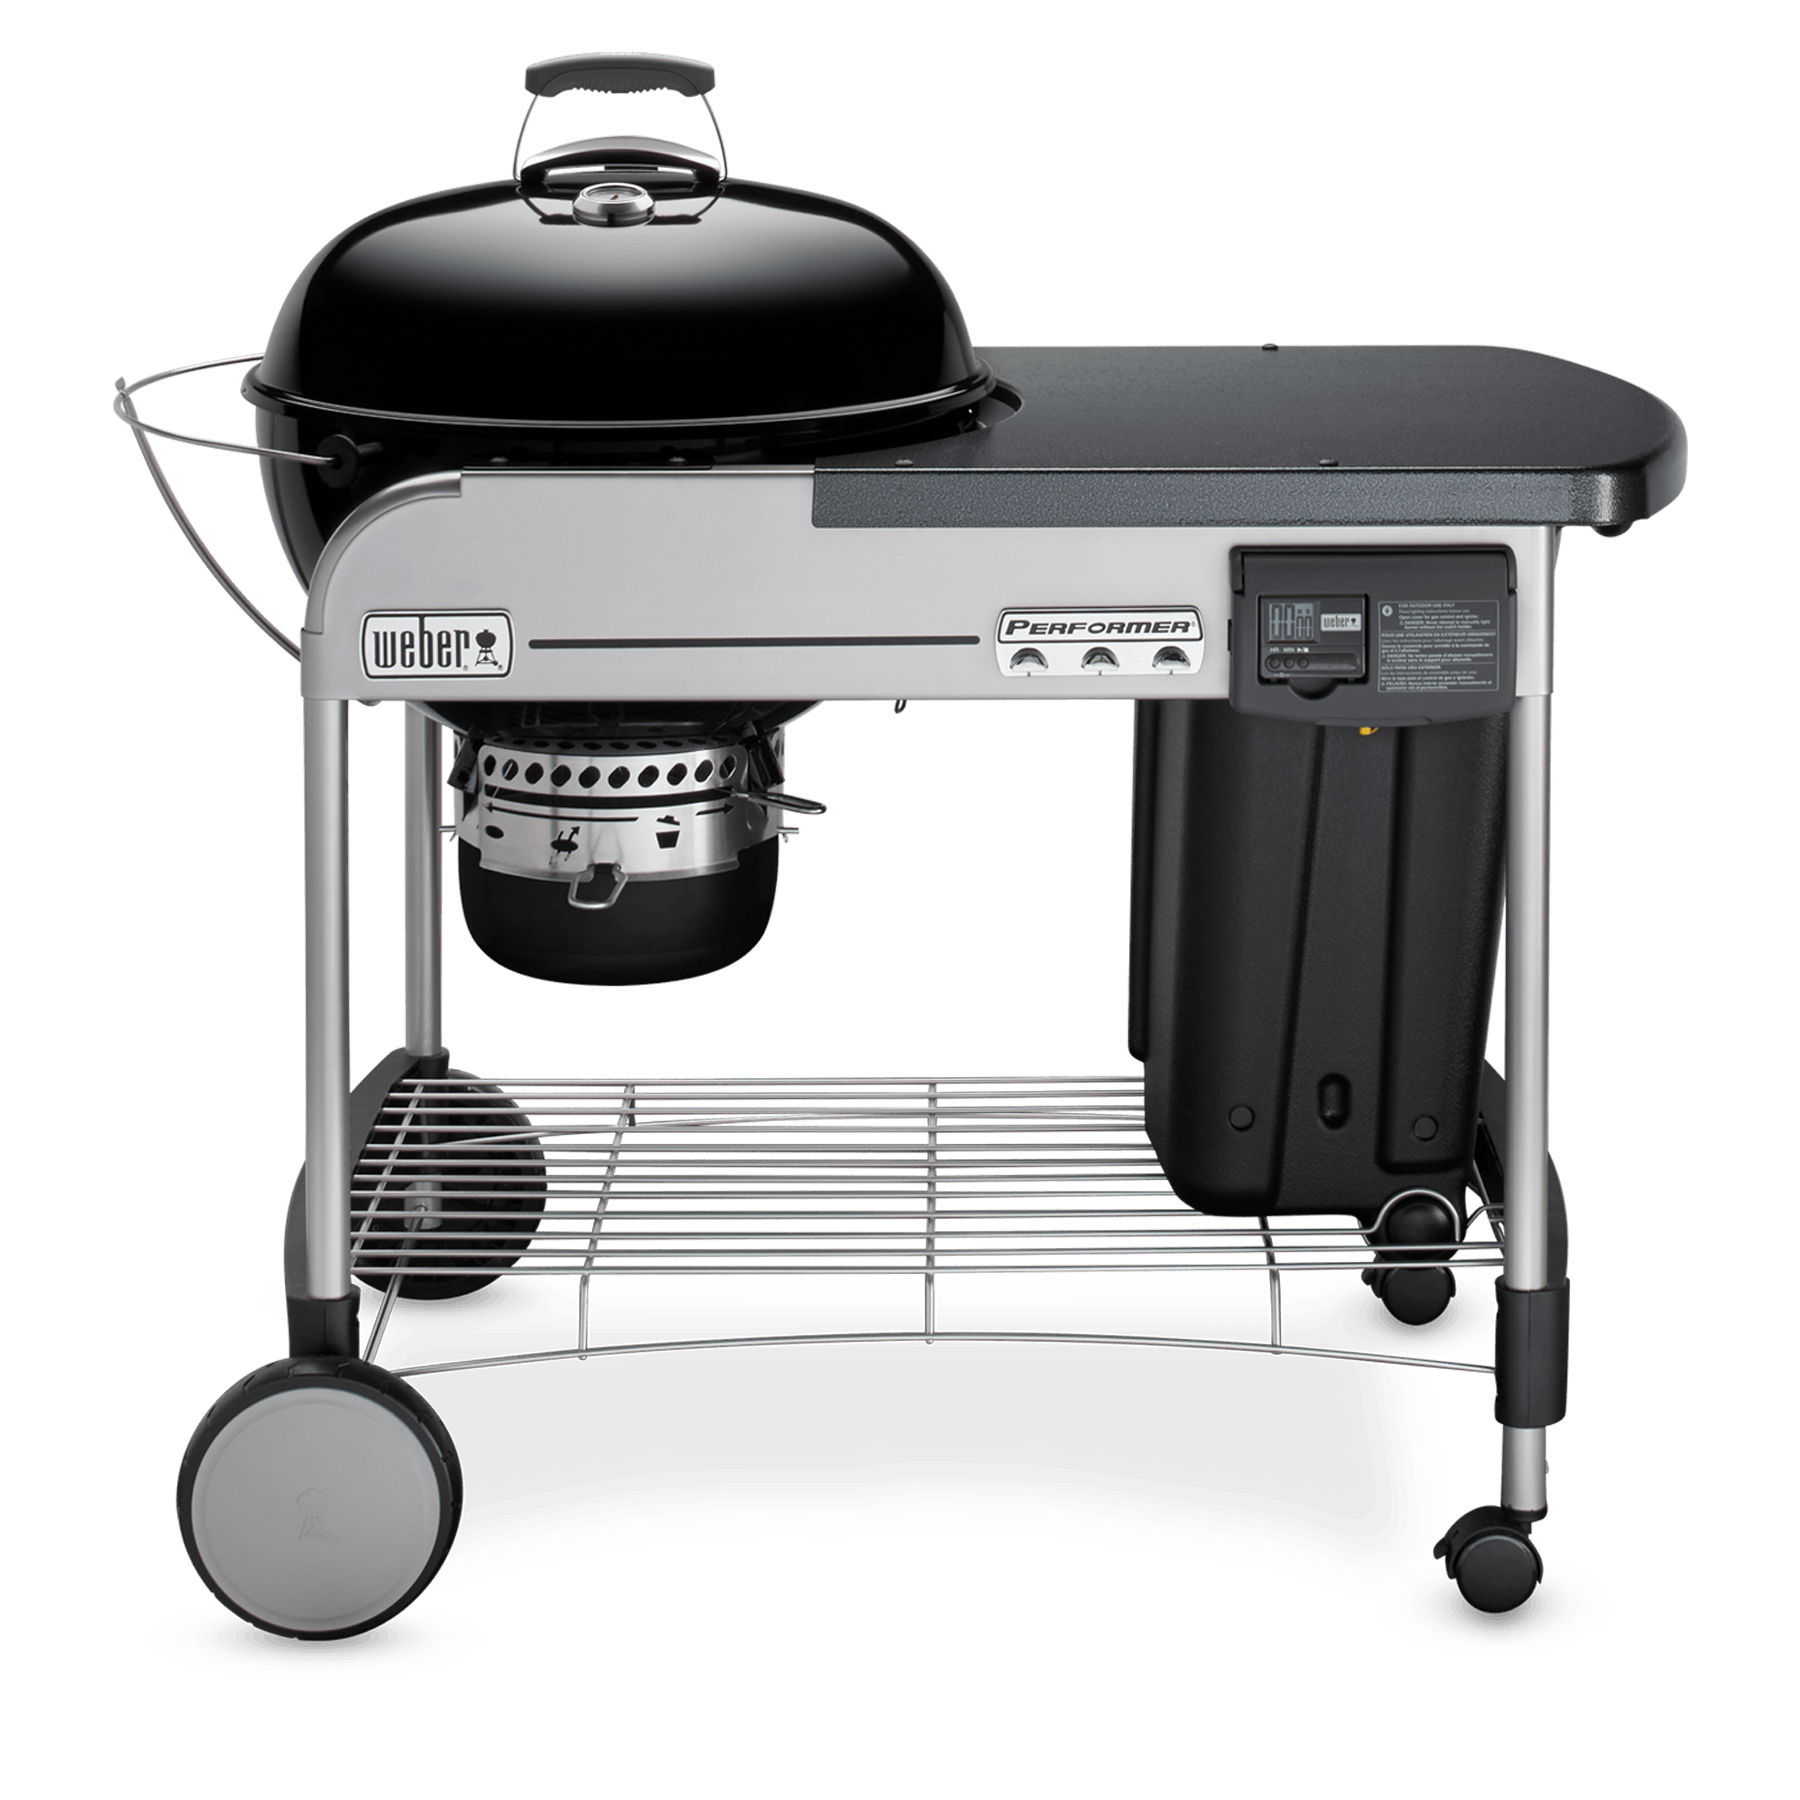 Performer Deluxe GBS Kullgrill 57 cm